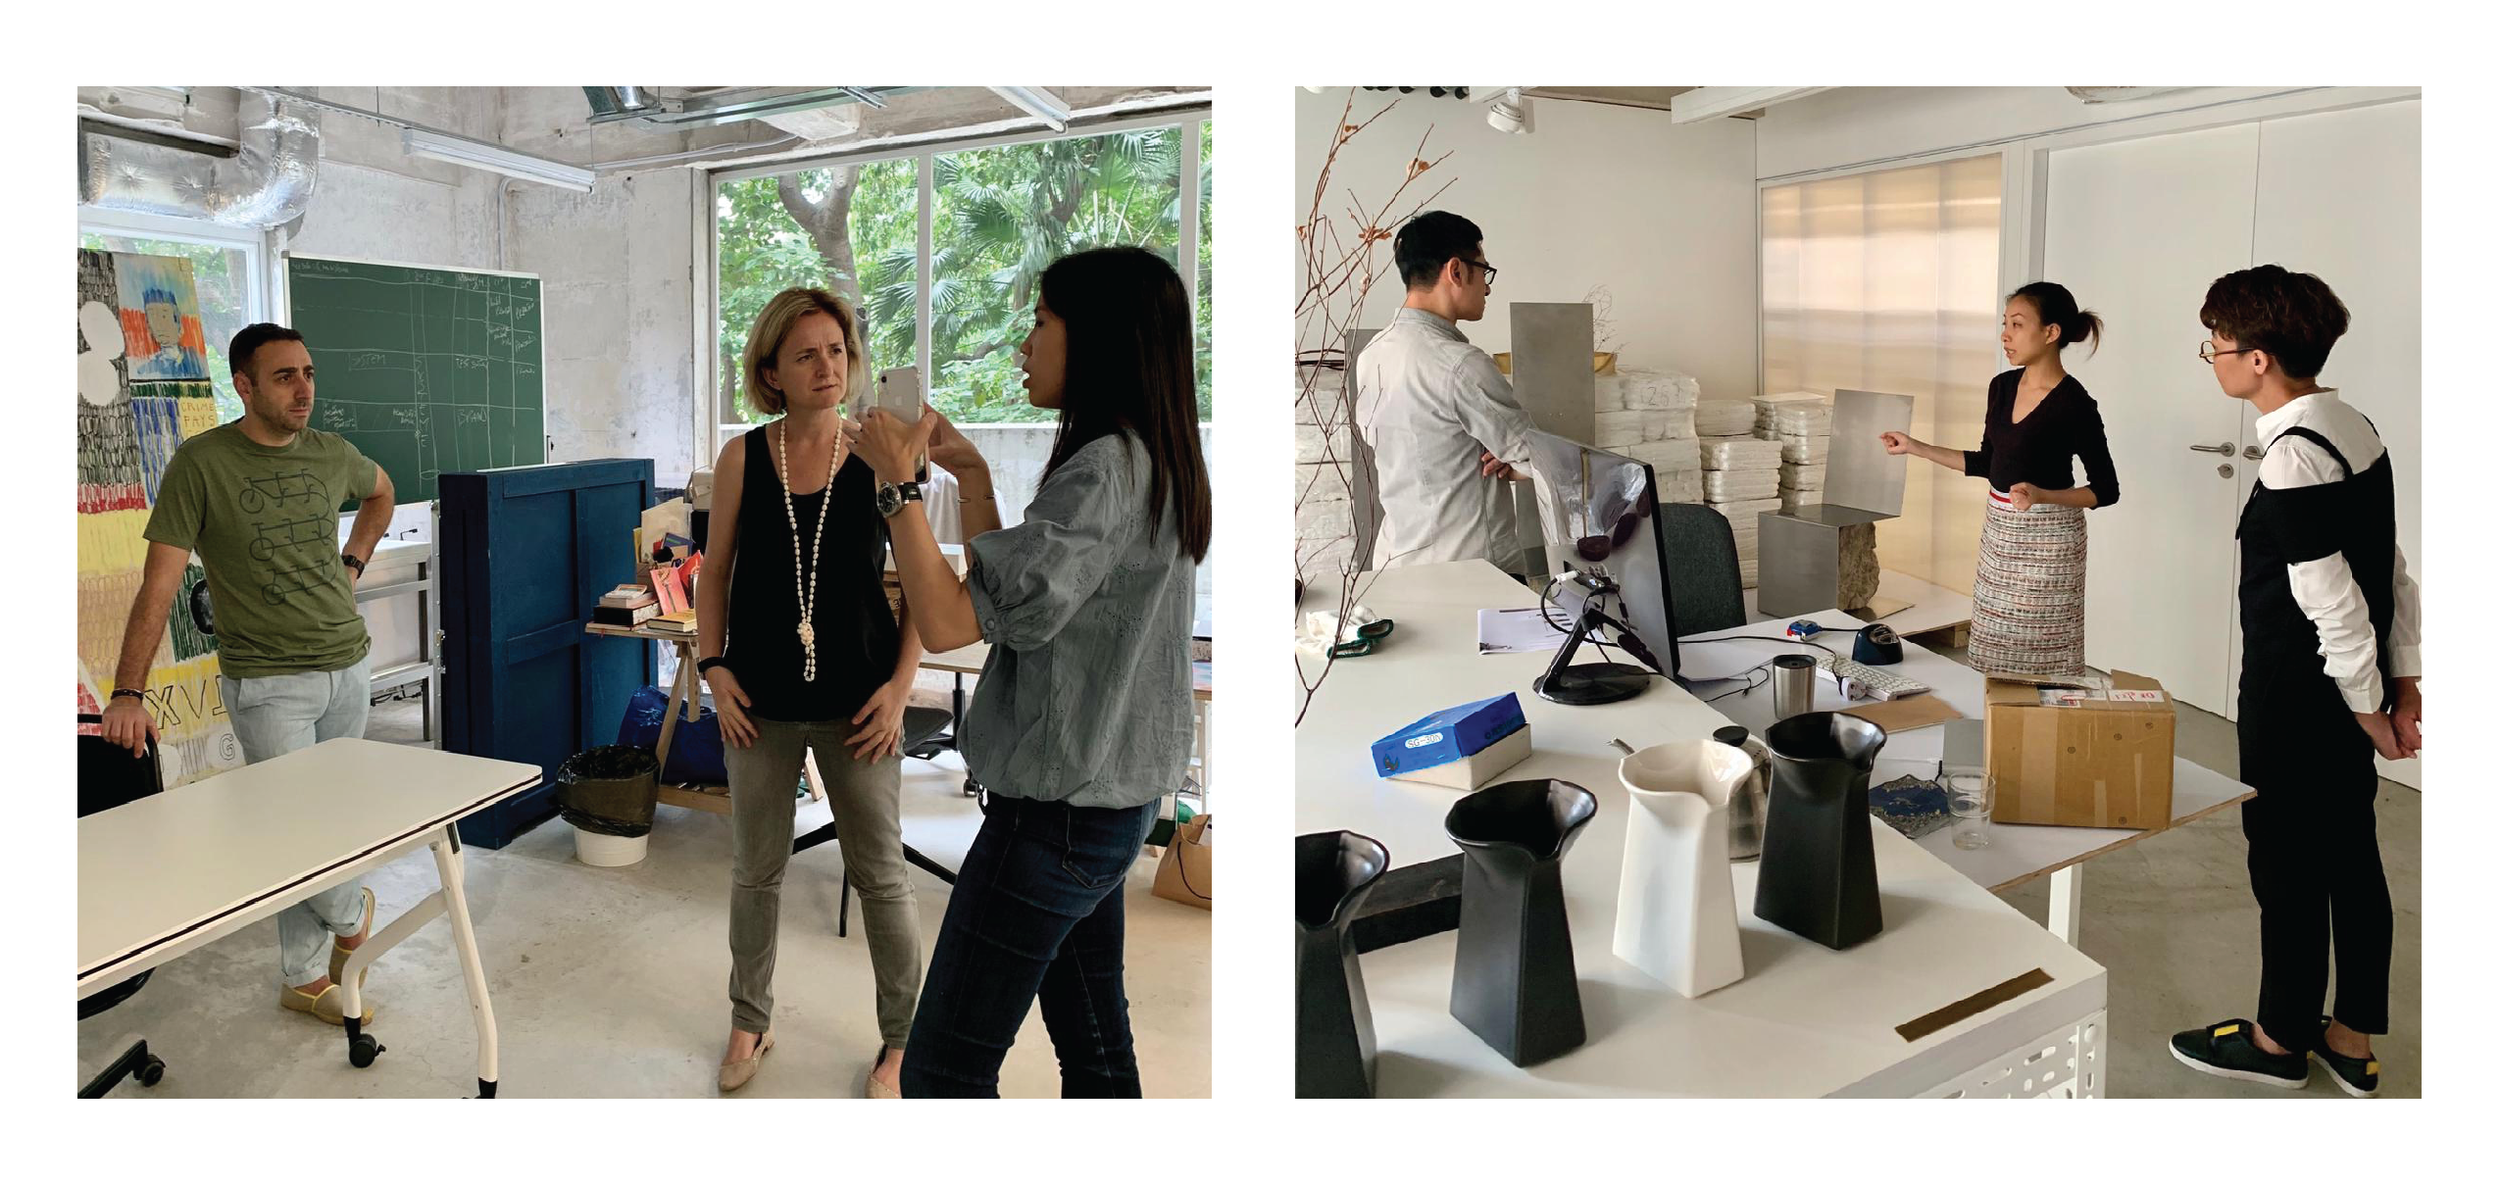 HART team (Jeannie Wu and Dorcas Leung) enjoyed a refreshing Saturday afternoon in exploring more about HART Haus with our guests - not only did they learn more about HART, they also helped imagine, construct and develop this creative space. HART團隊 (胡津如及梁長羚) 與參加活動的朋友享受了一個美好的星期六下午。參加者透過參觀工作室更深入了解 HART,繼而共同想像、建構並發展這個創意空間。